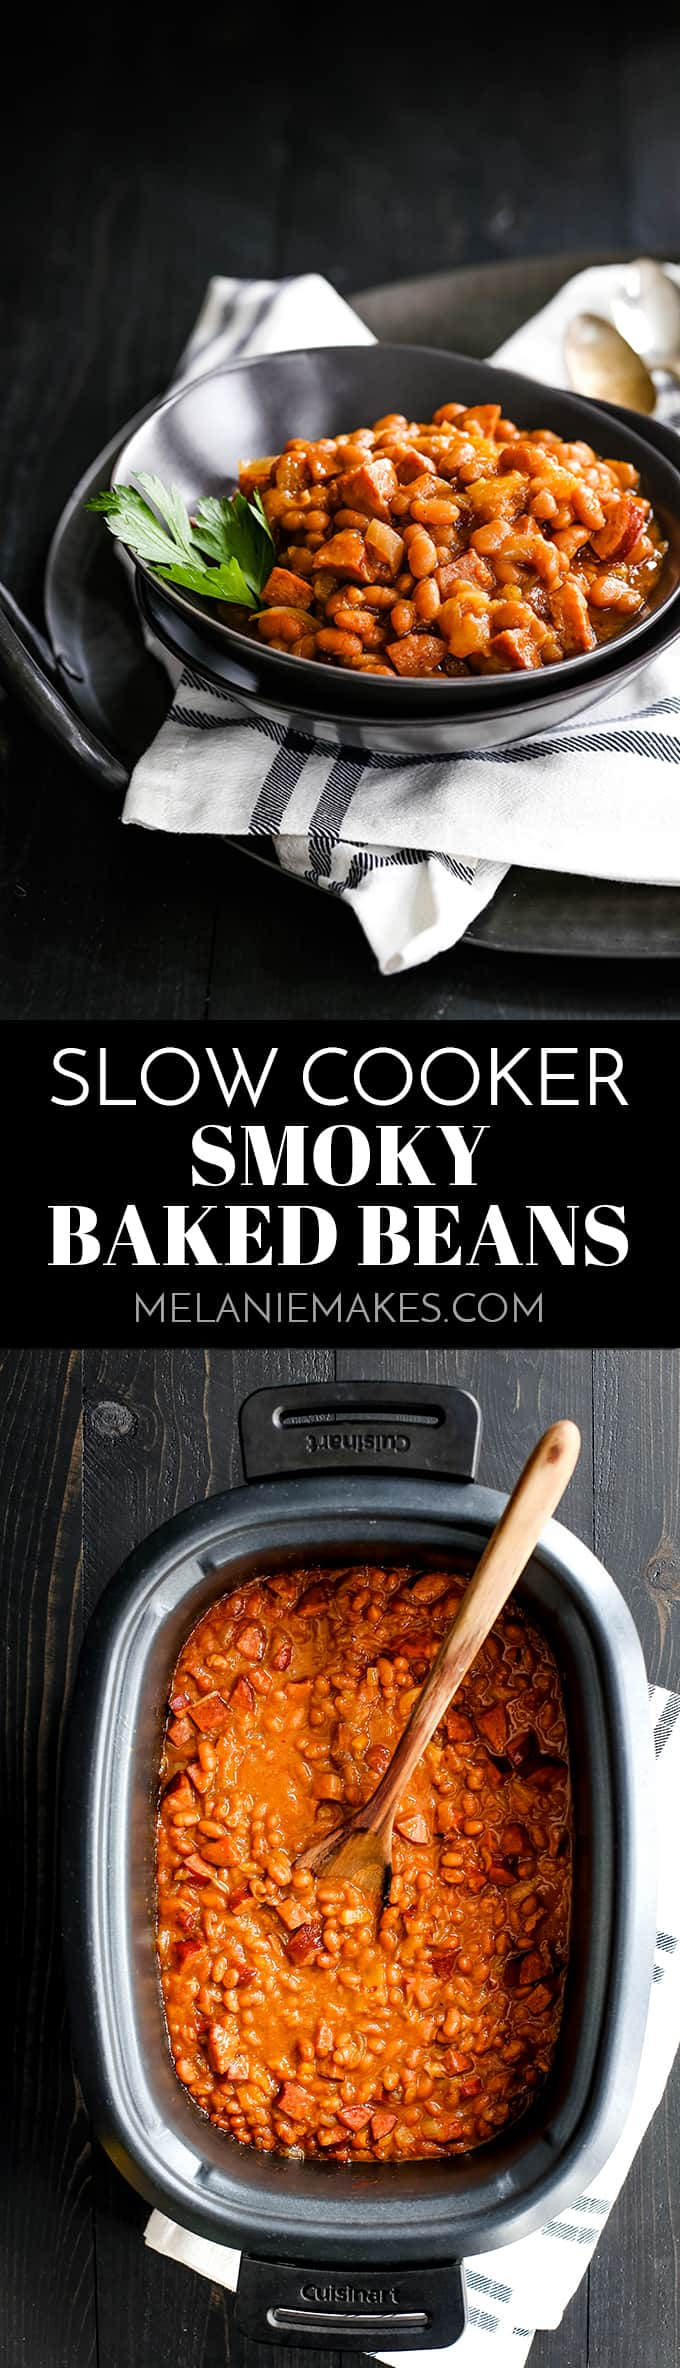 These eight ingredient Slow Cooker Smoky Baked Beans take just 10 minutes and are the perfect side dish to any barbecue or cookout. #slowcooker #crockpot #bakedbeans #beans #sidedish #easyrecipe